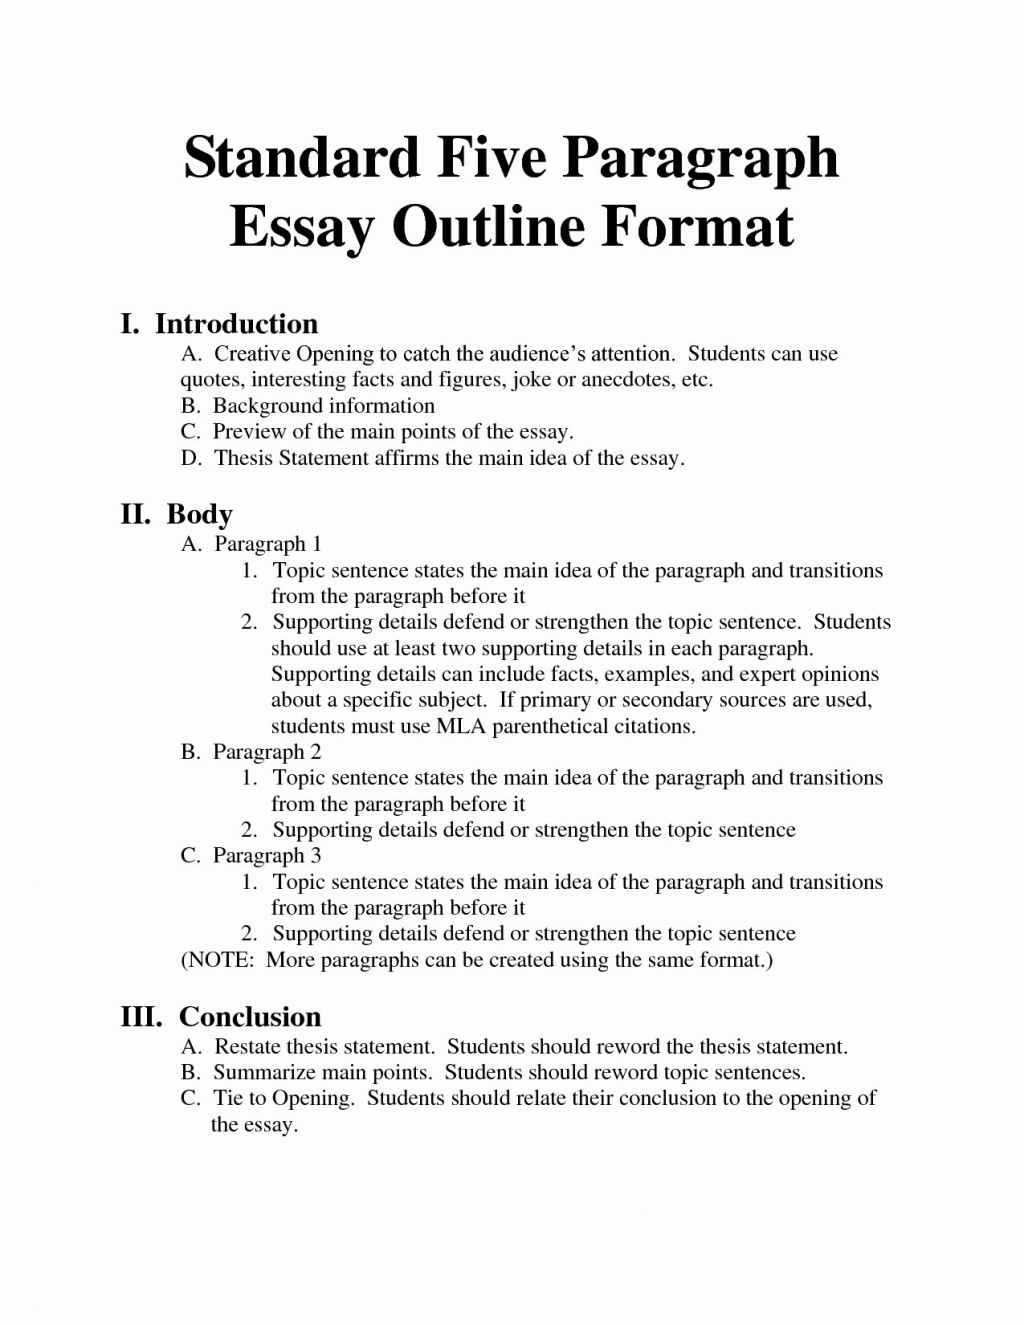 003 Evaluation Essay Outline Example Unique English Format Movie Of Self Film Template Layout Critical Unforgettable Review Paper Source Large